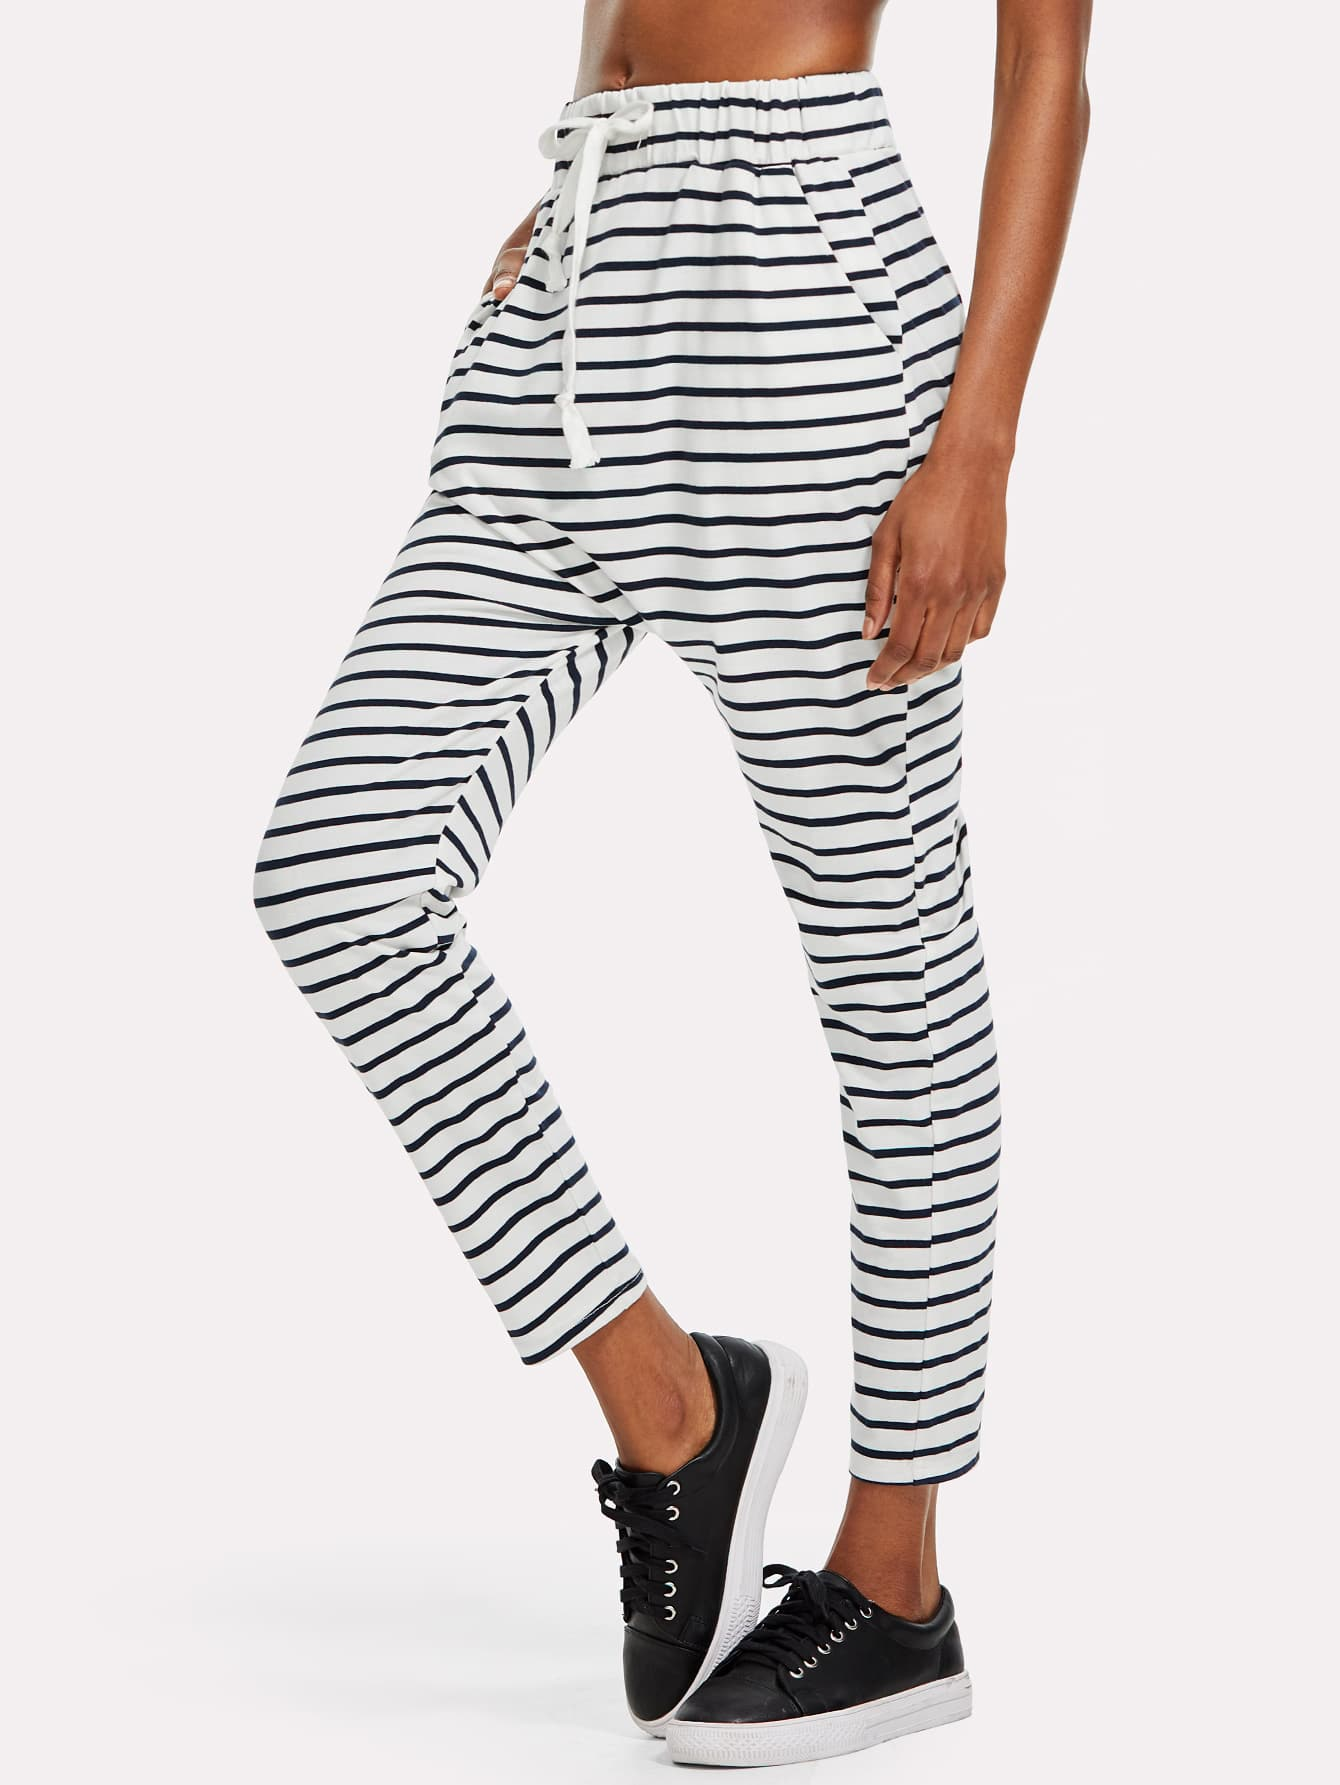 Drawstring Waist Striped Print Harem Pants plus size striped harem pants